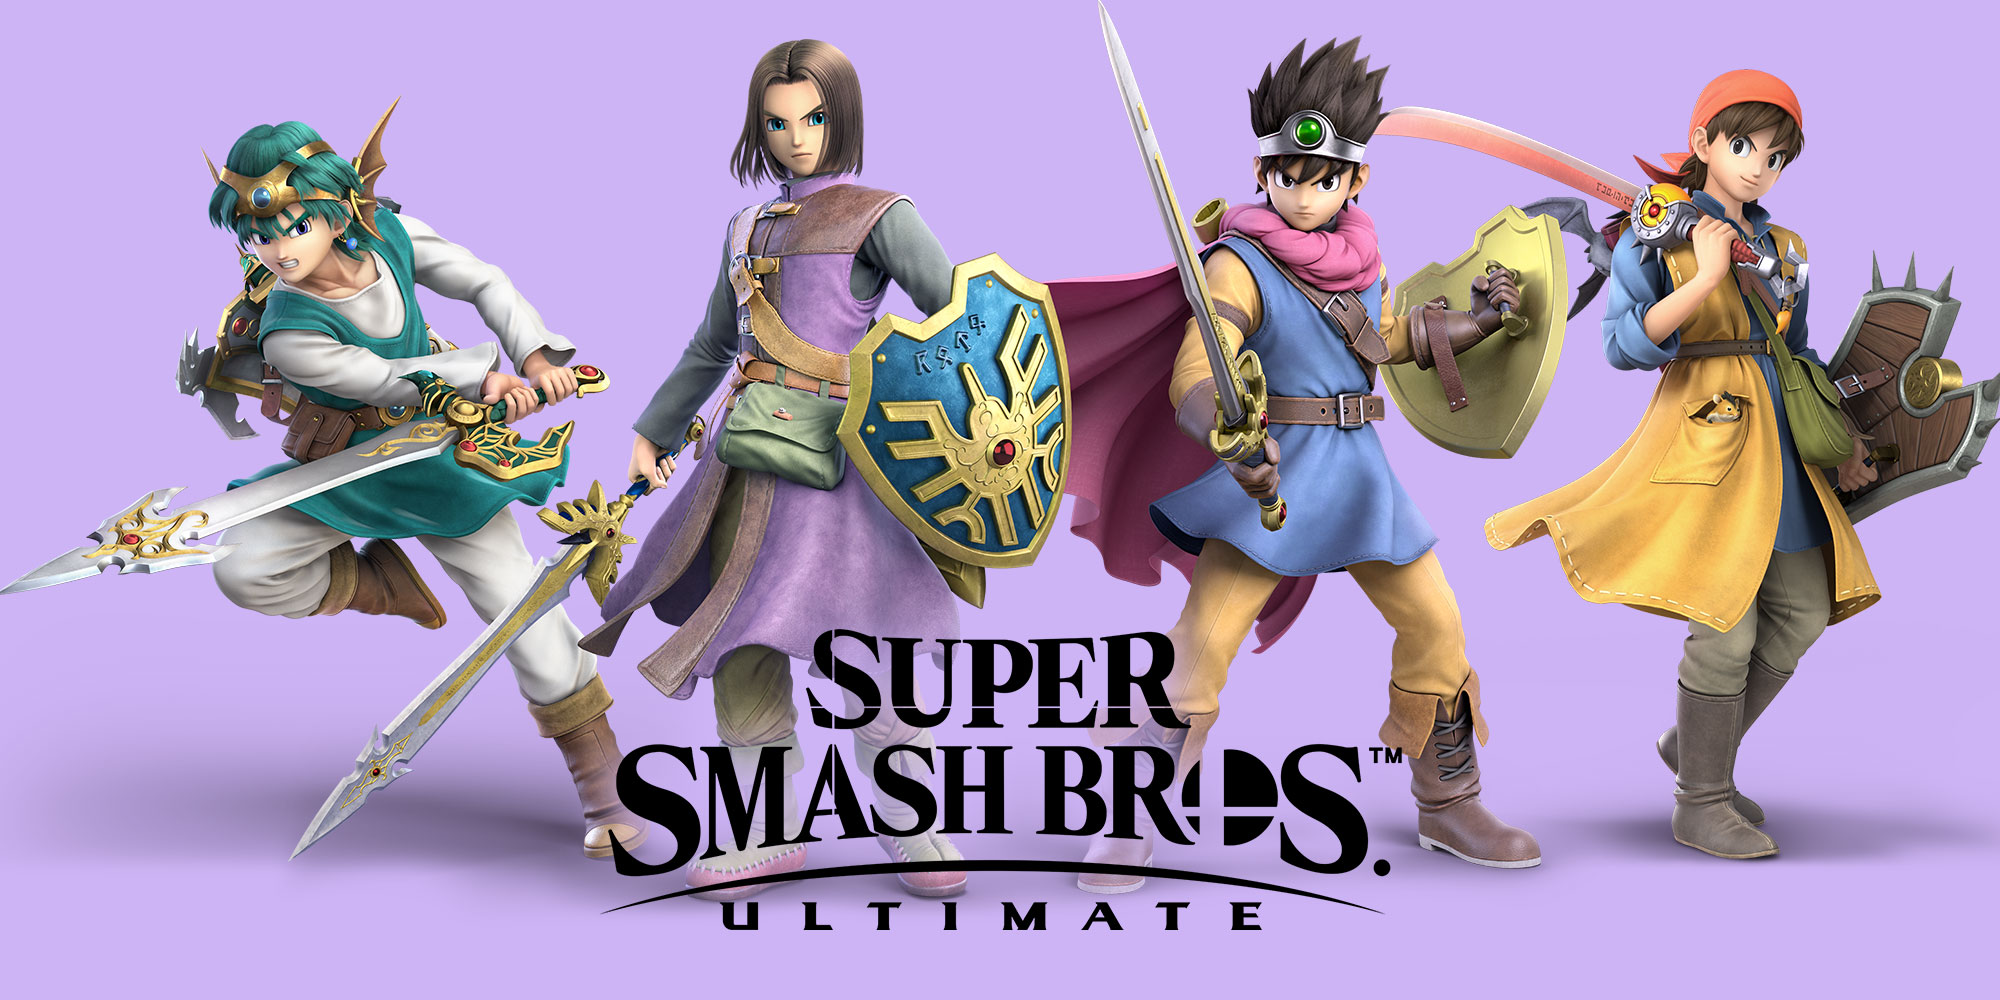 DRAGON QUEST'S Hero arrives in Super Smash Bros. Ultimate on July 31st!